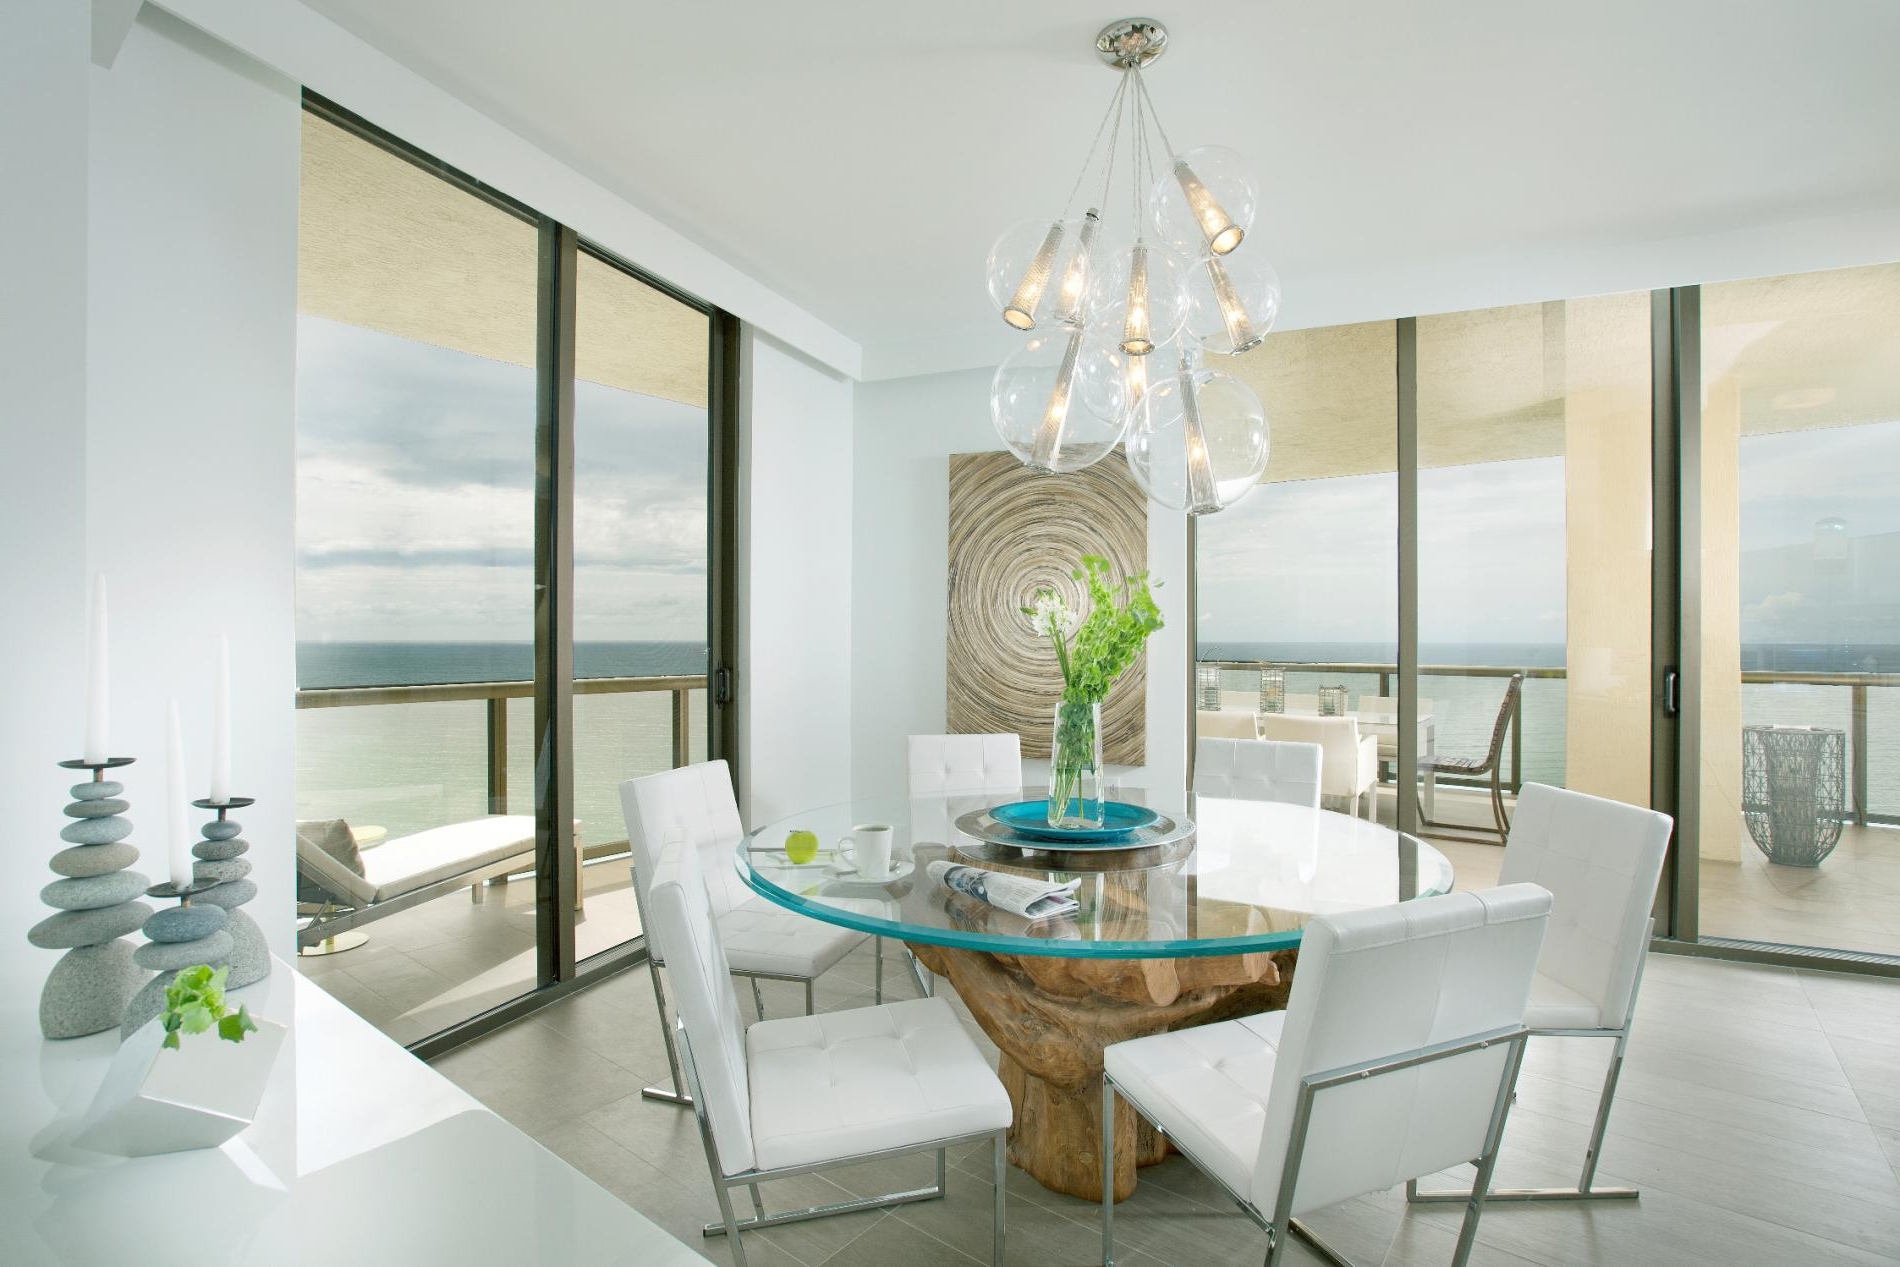 15 Elegant And Sophisticated Round Dining Tables For Your House In Favorite Elegance Small Round Dining Tables (Gallery 28 of 30)